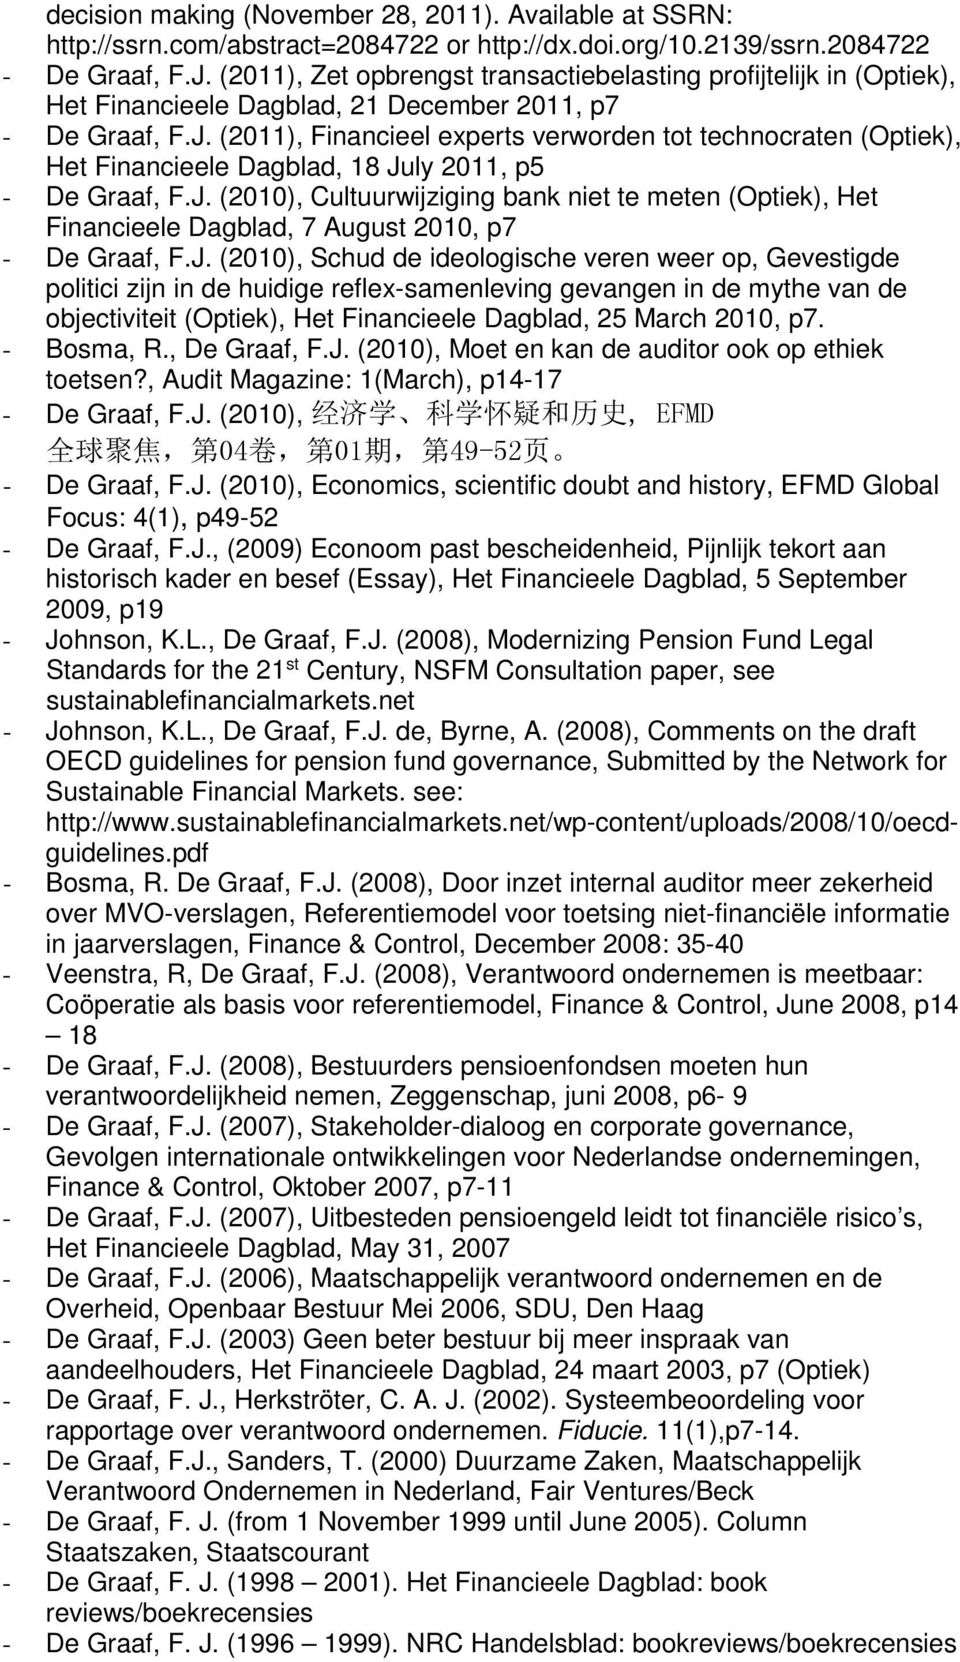 (2011), Financieel experts verworden tot technocraten (Optiek), Het Financieele Dagblad, 18 Ju